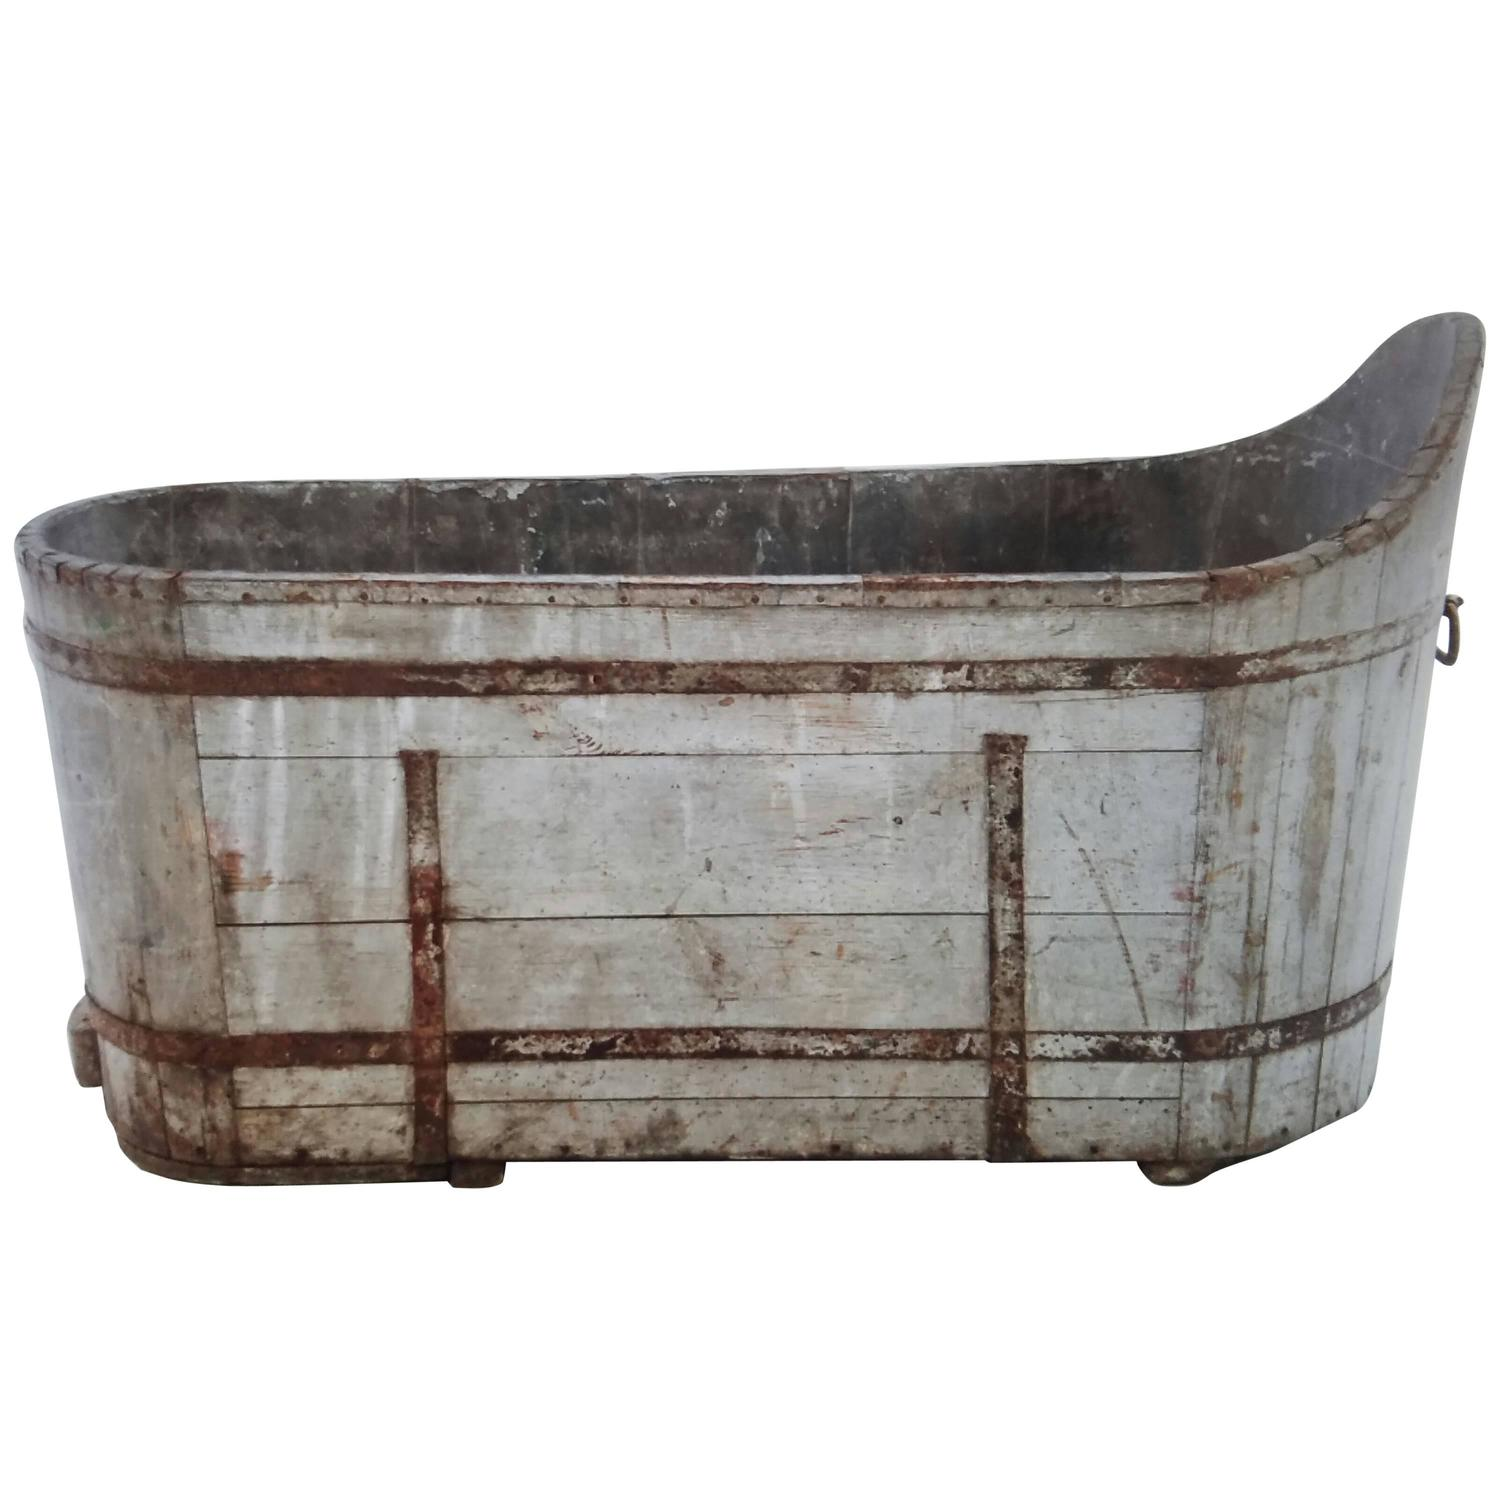 antique french wood plank tub with metal strap as planter for sale at 1stdibs. Black Bedroom Furniture Sets. Home Design Ideas